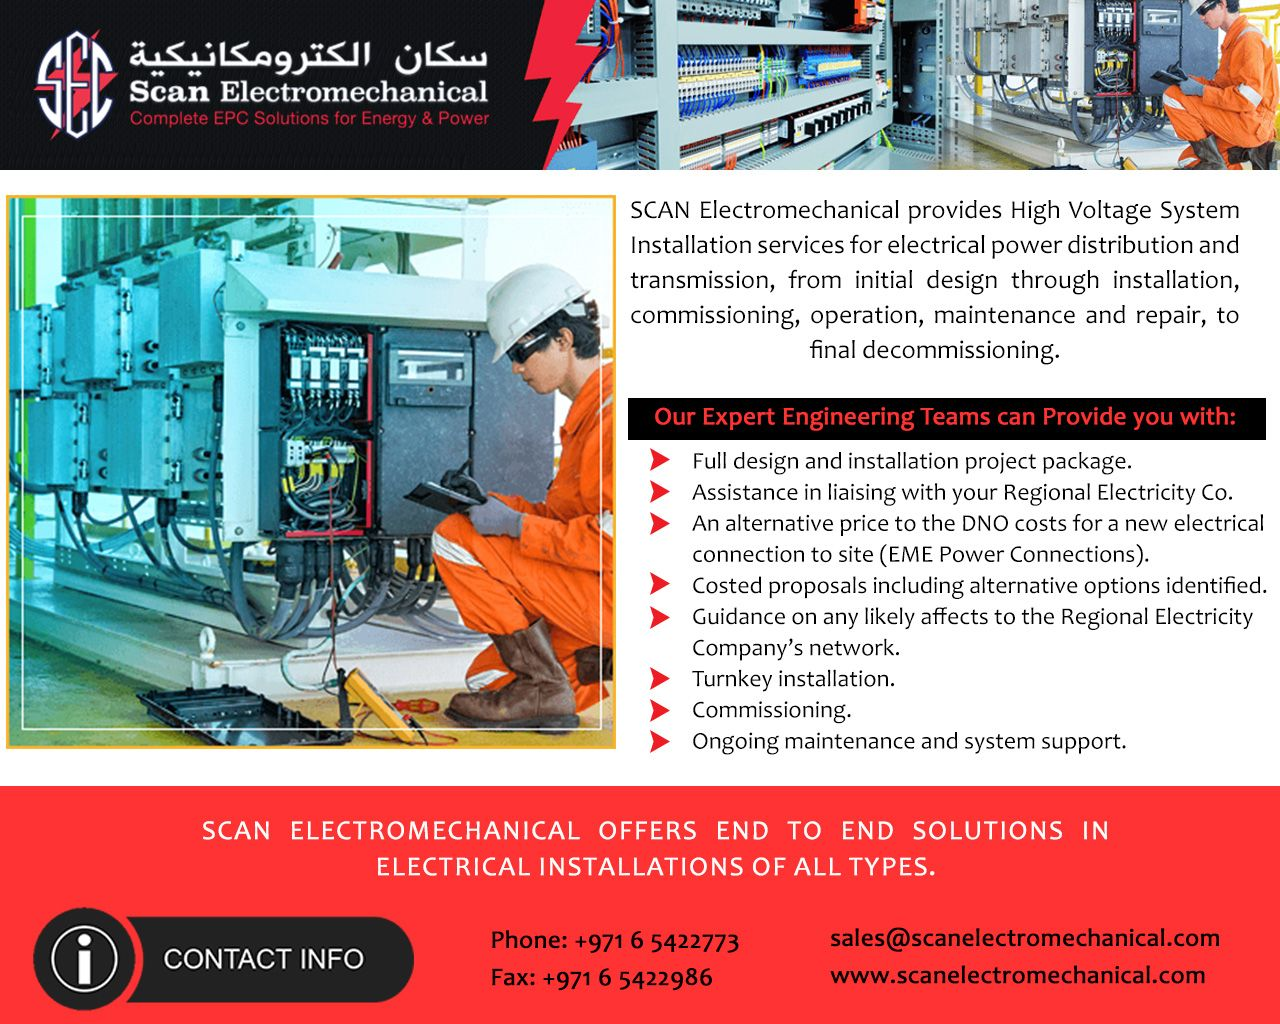 SCAN Electromechanical provides complete EPC solutions in energy